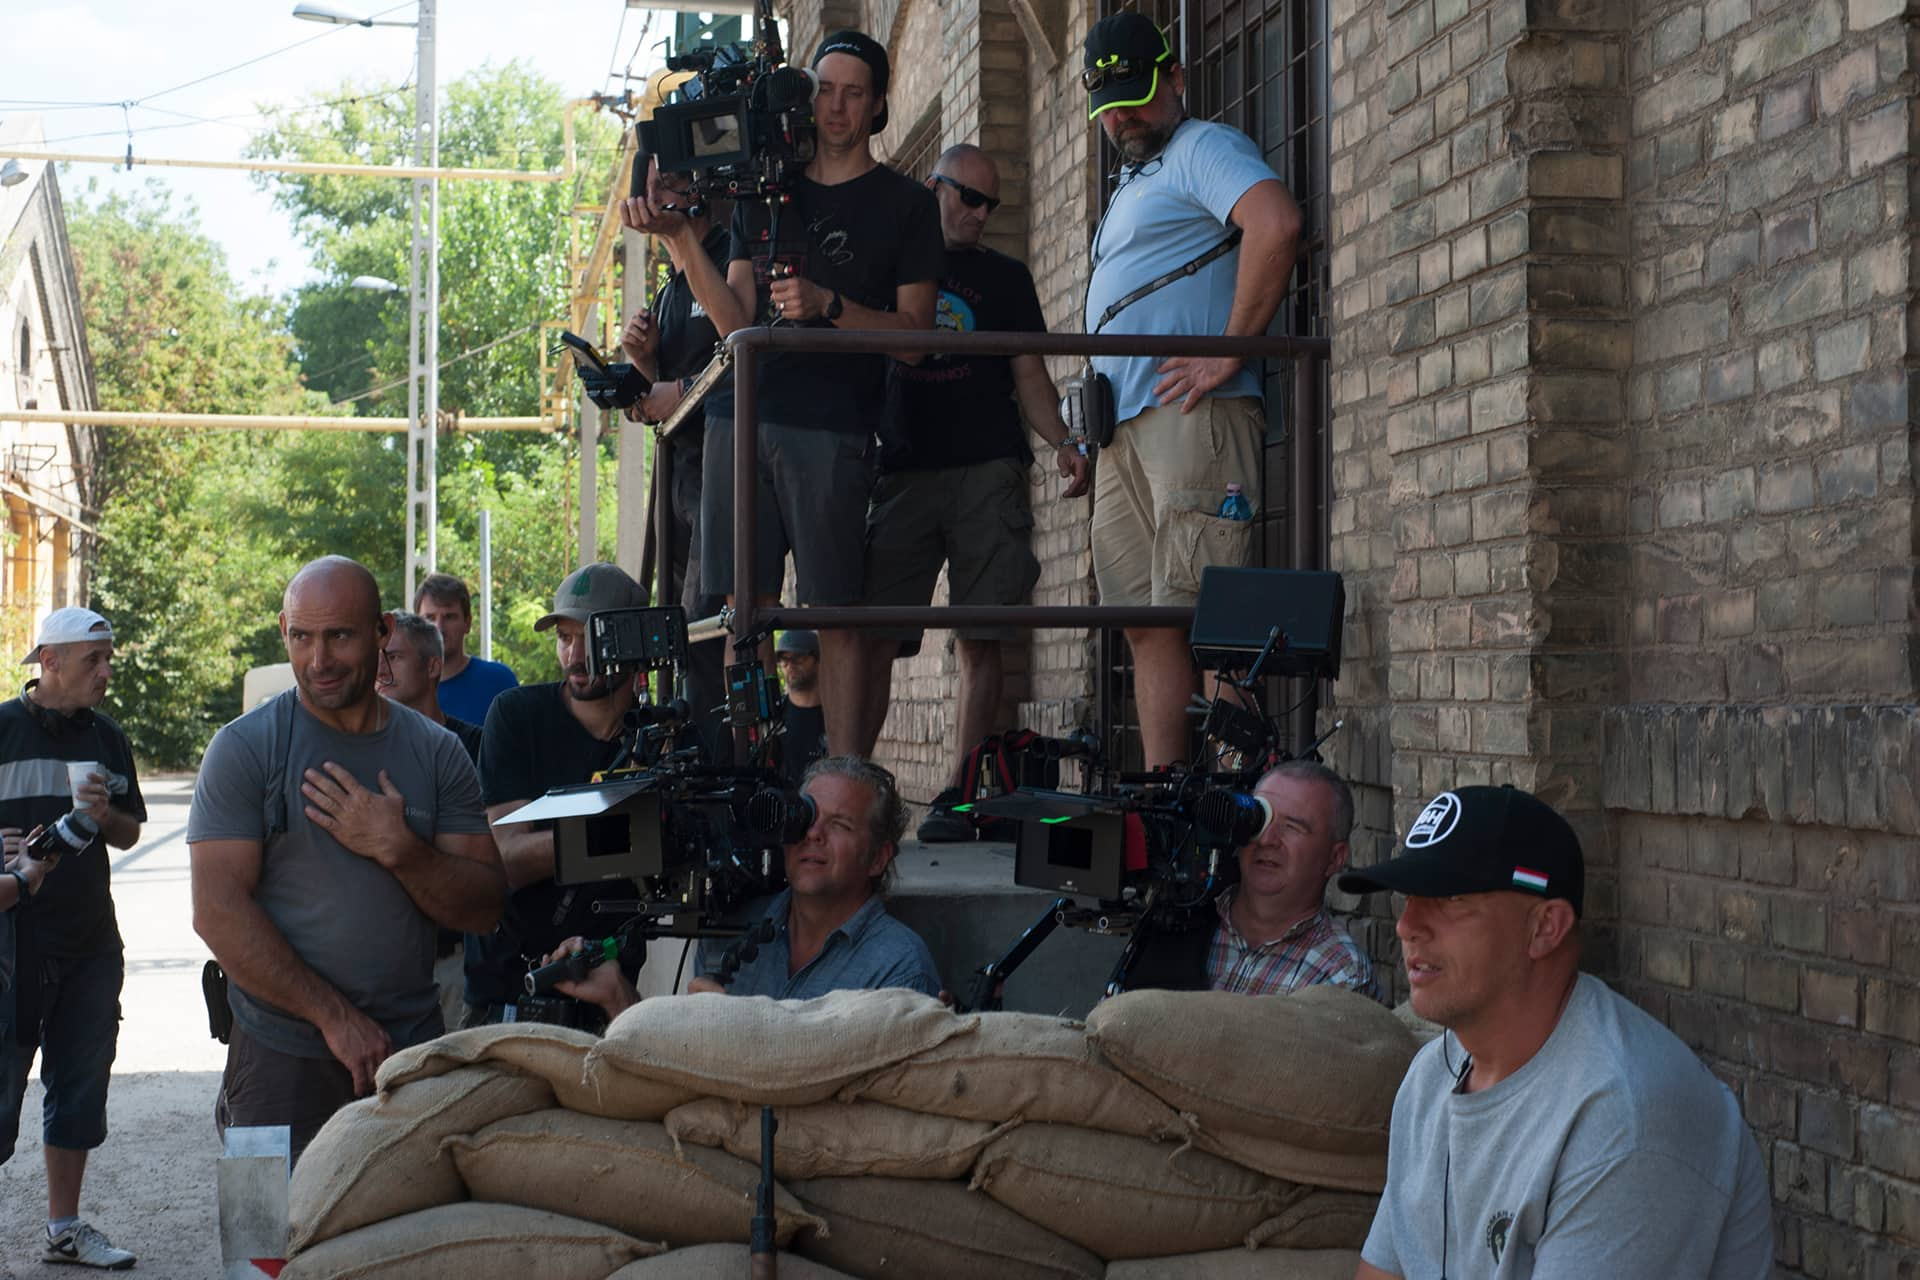 Behind the scenes on the set of X Company Season 3 with